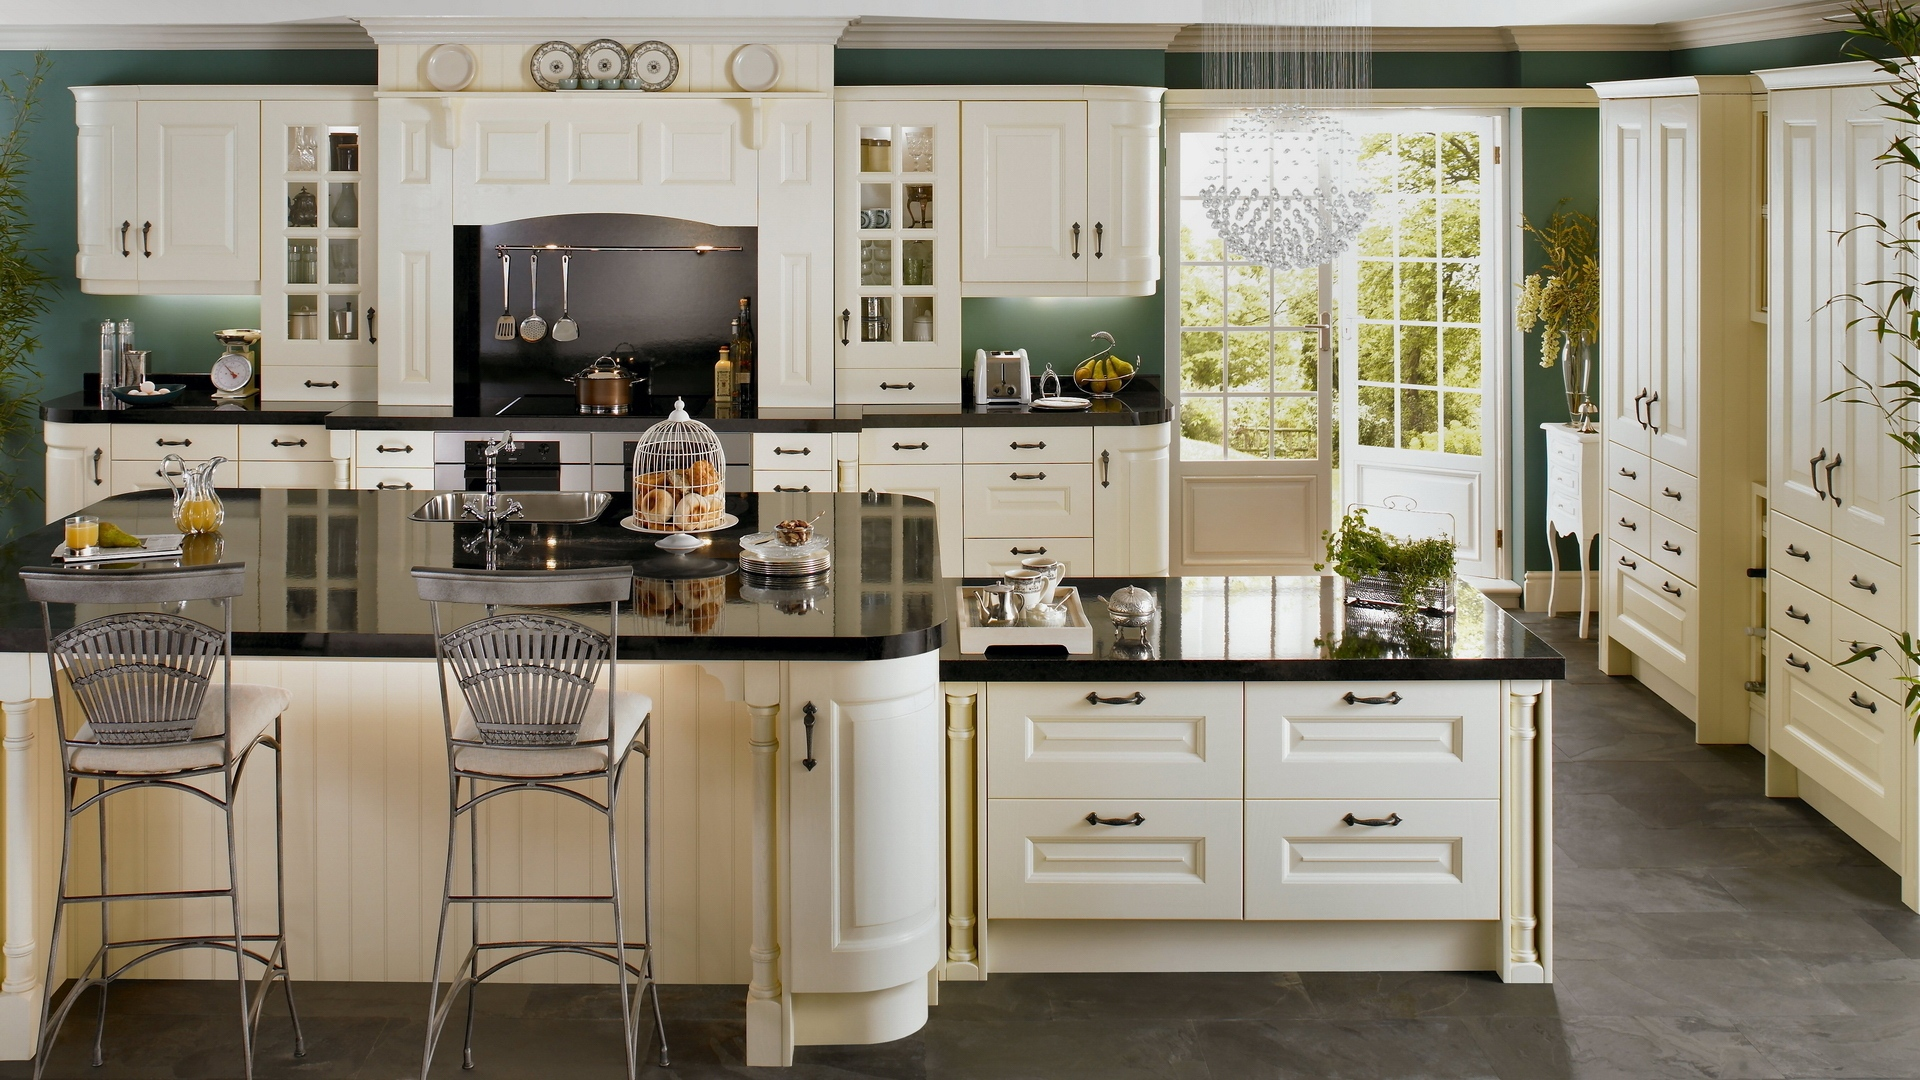 Kitchen Design Images Free